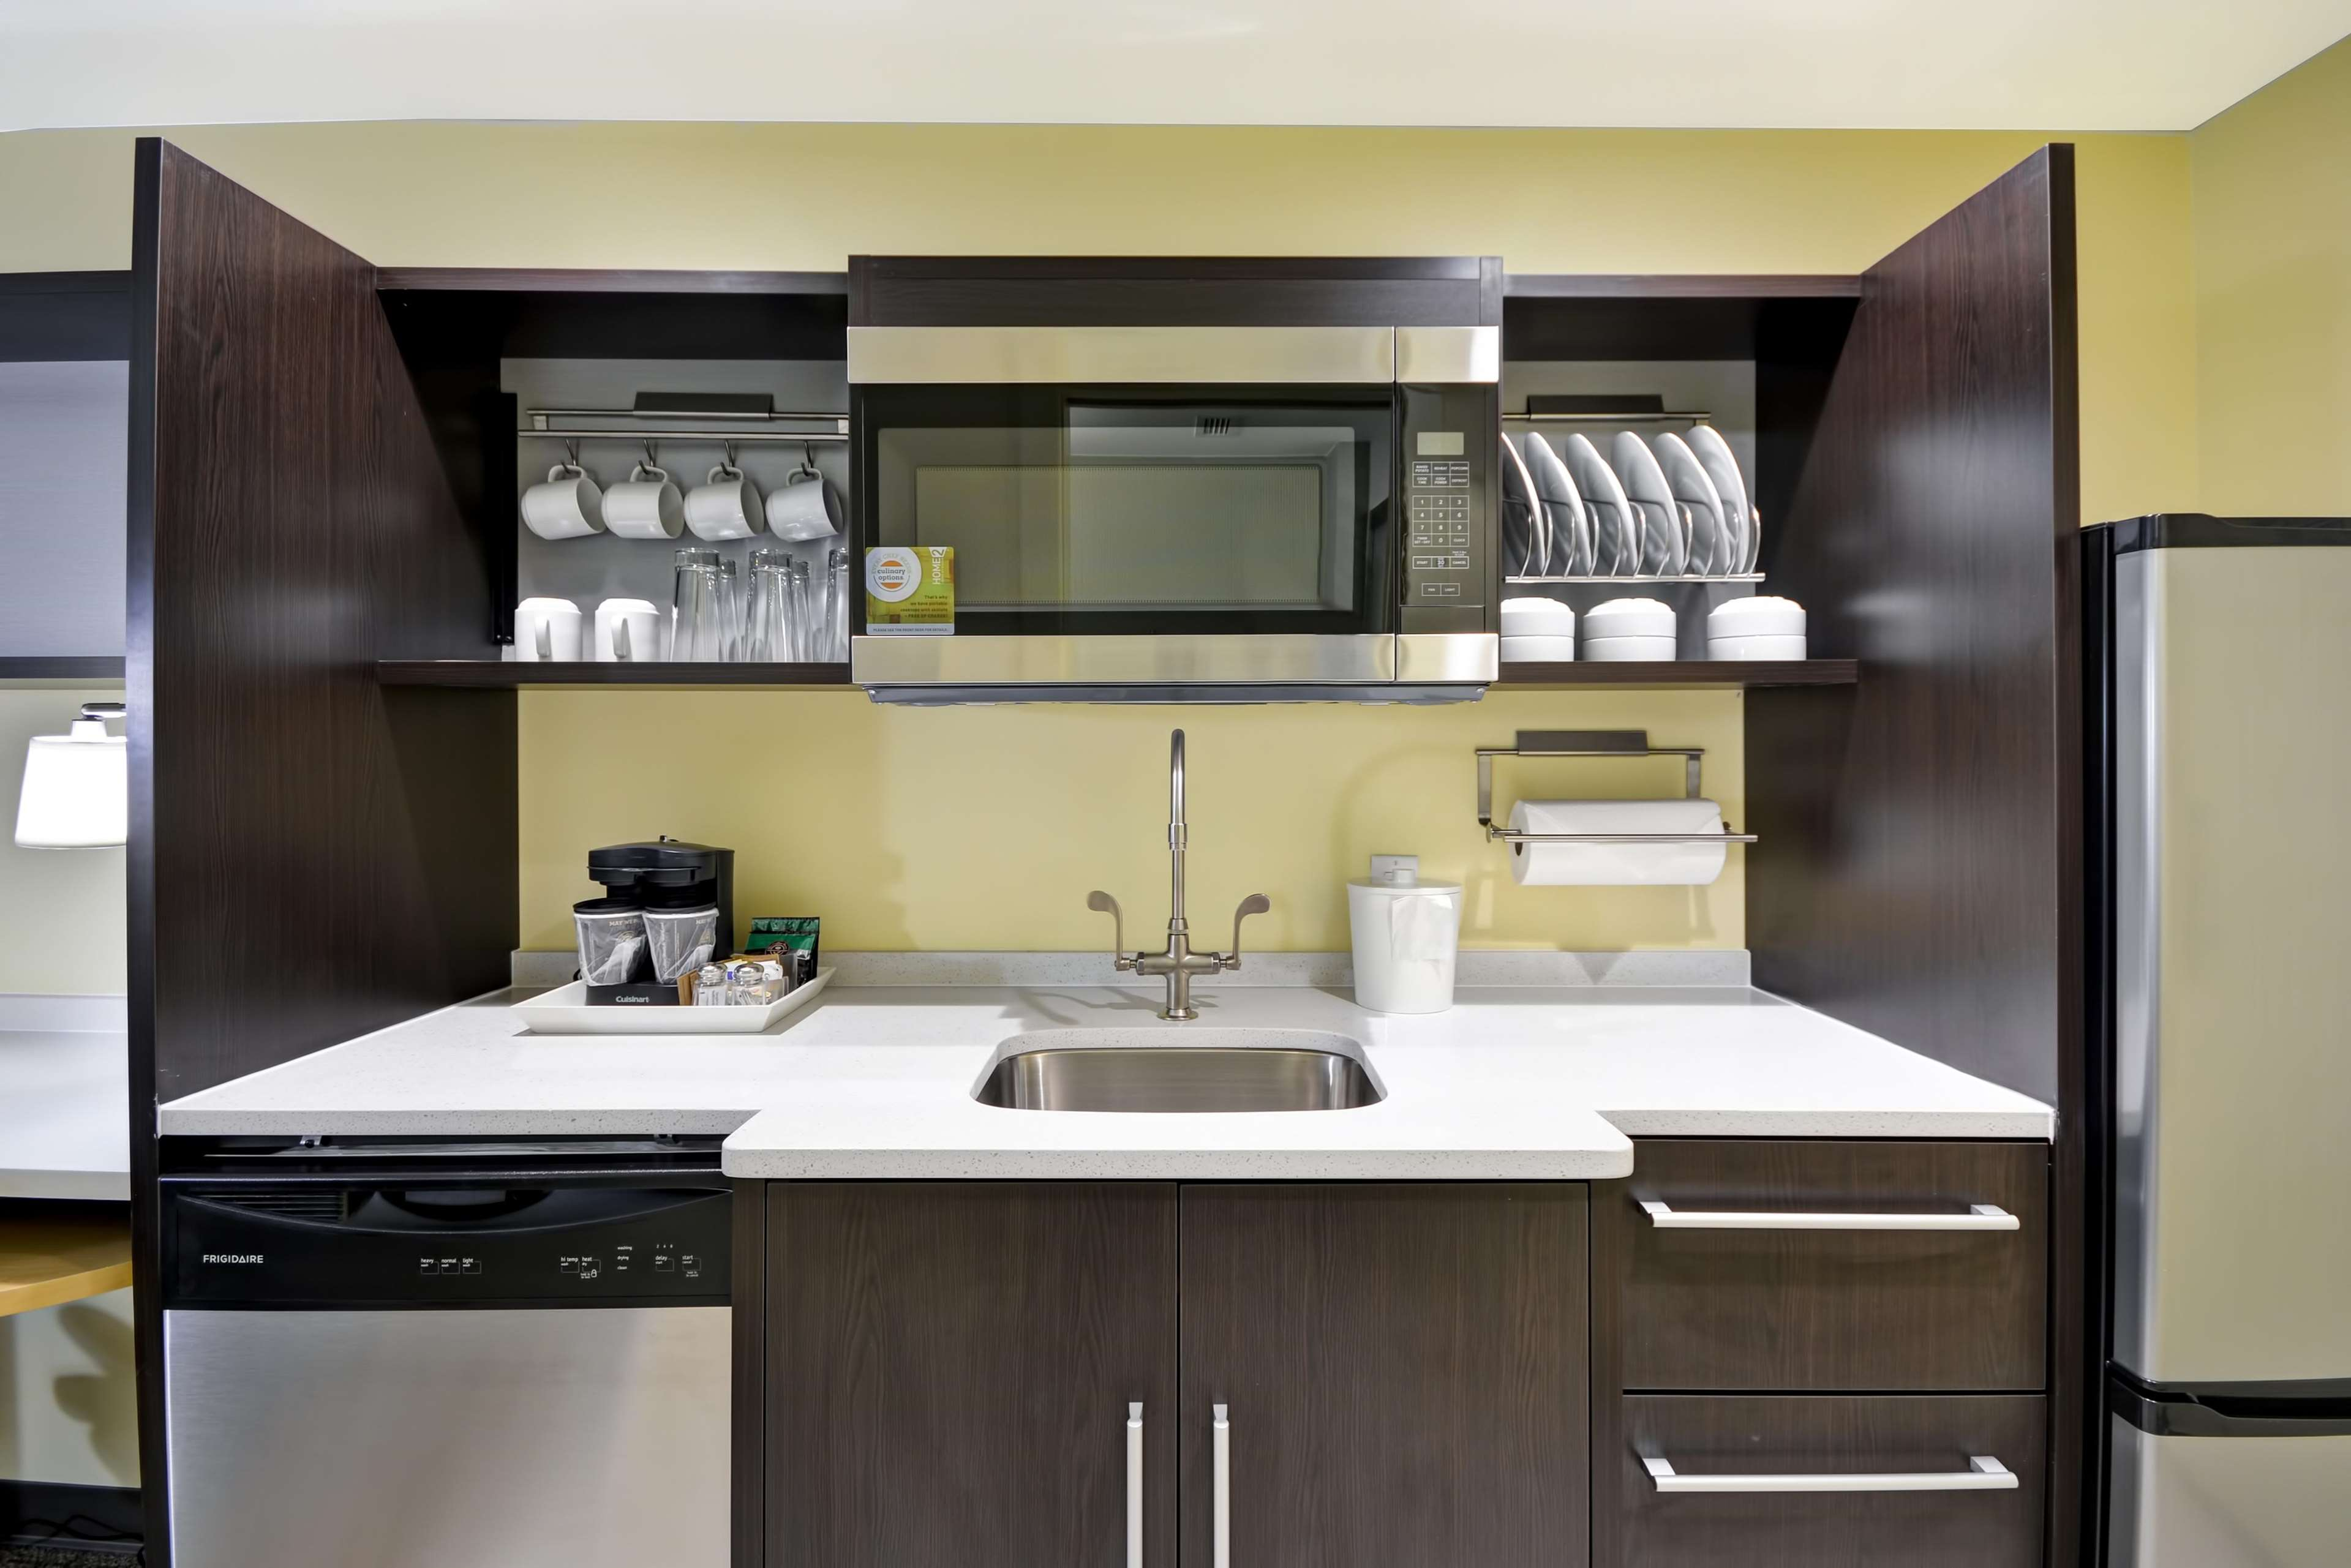 Home2 Suites By Hilton Maumee Toledo image 19